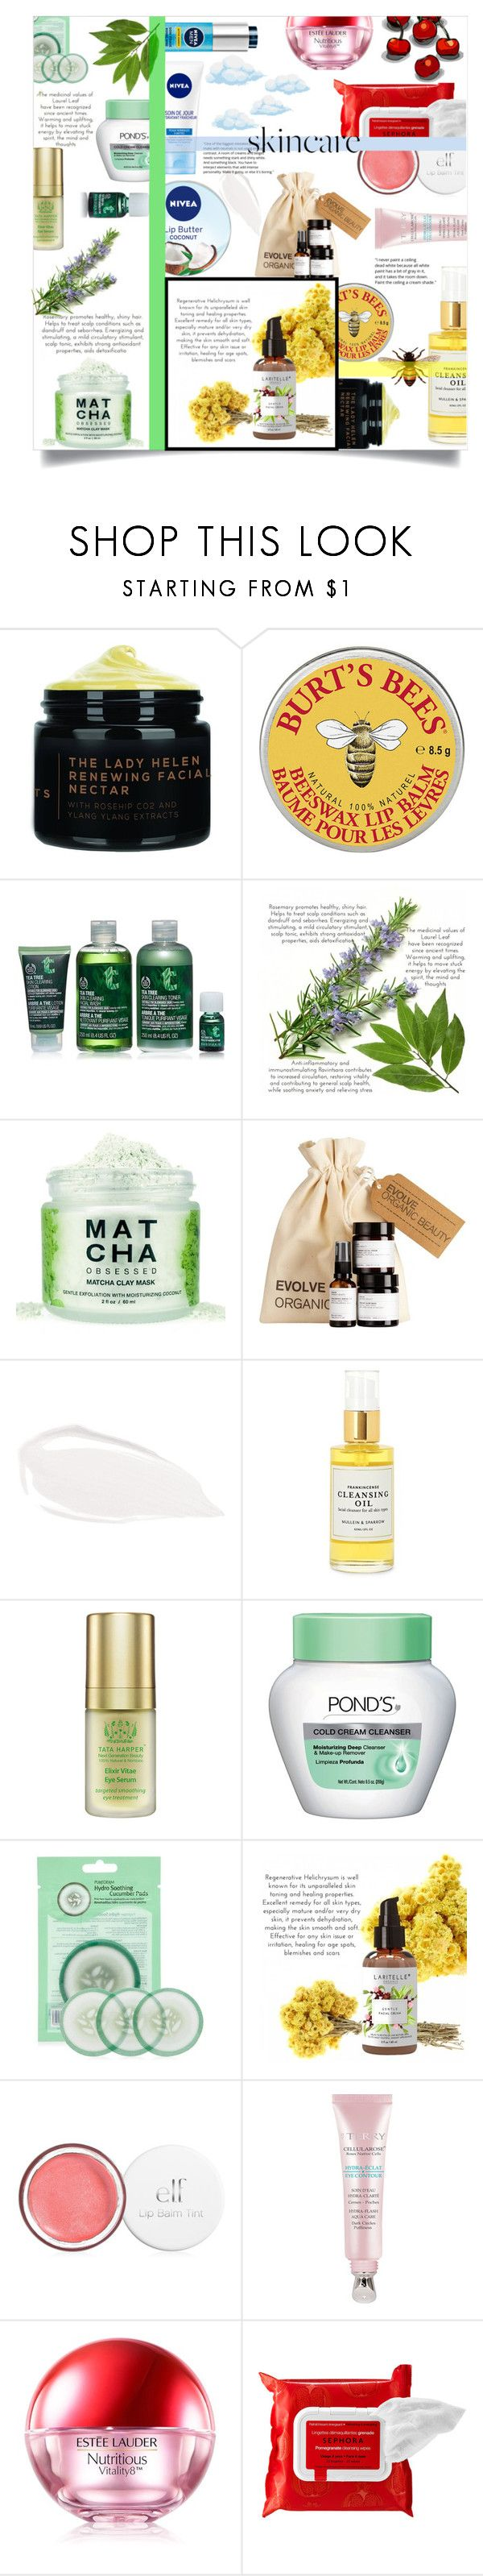 """""""Hello, Flawless: Skincare"""" by katerina1500 ❤ liked on Polyvore featuring beauty, Nivea, Too Faced Cosmetics, Mullein & Sparrow, Tata Harper, Forever 21, Estée Lauder, Sephora Collection and SkinCare"""